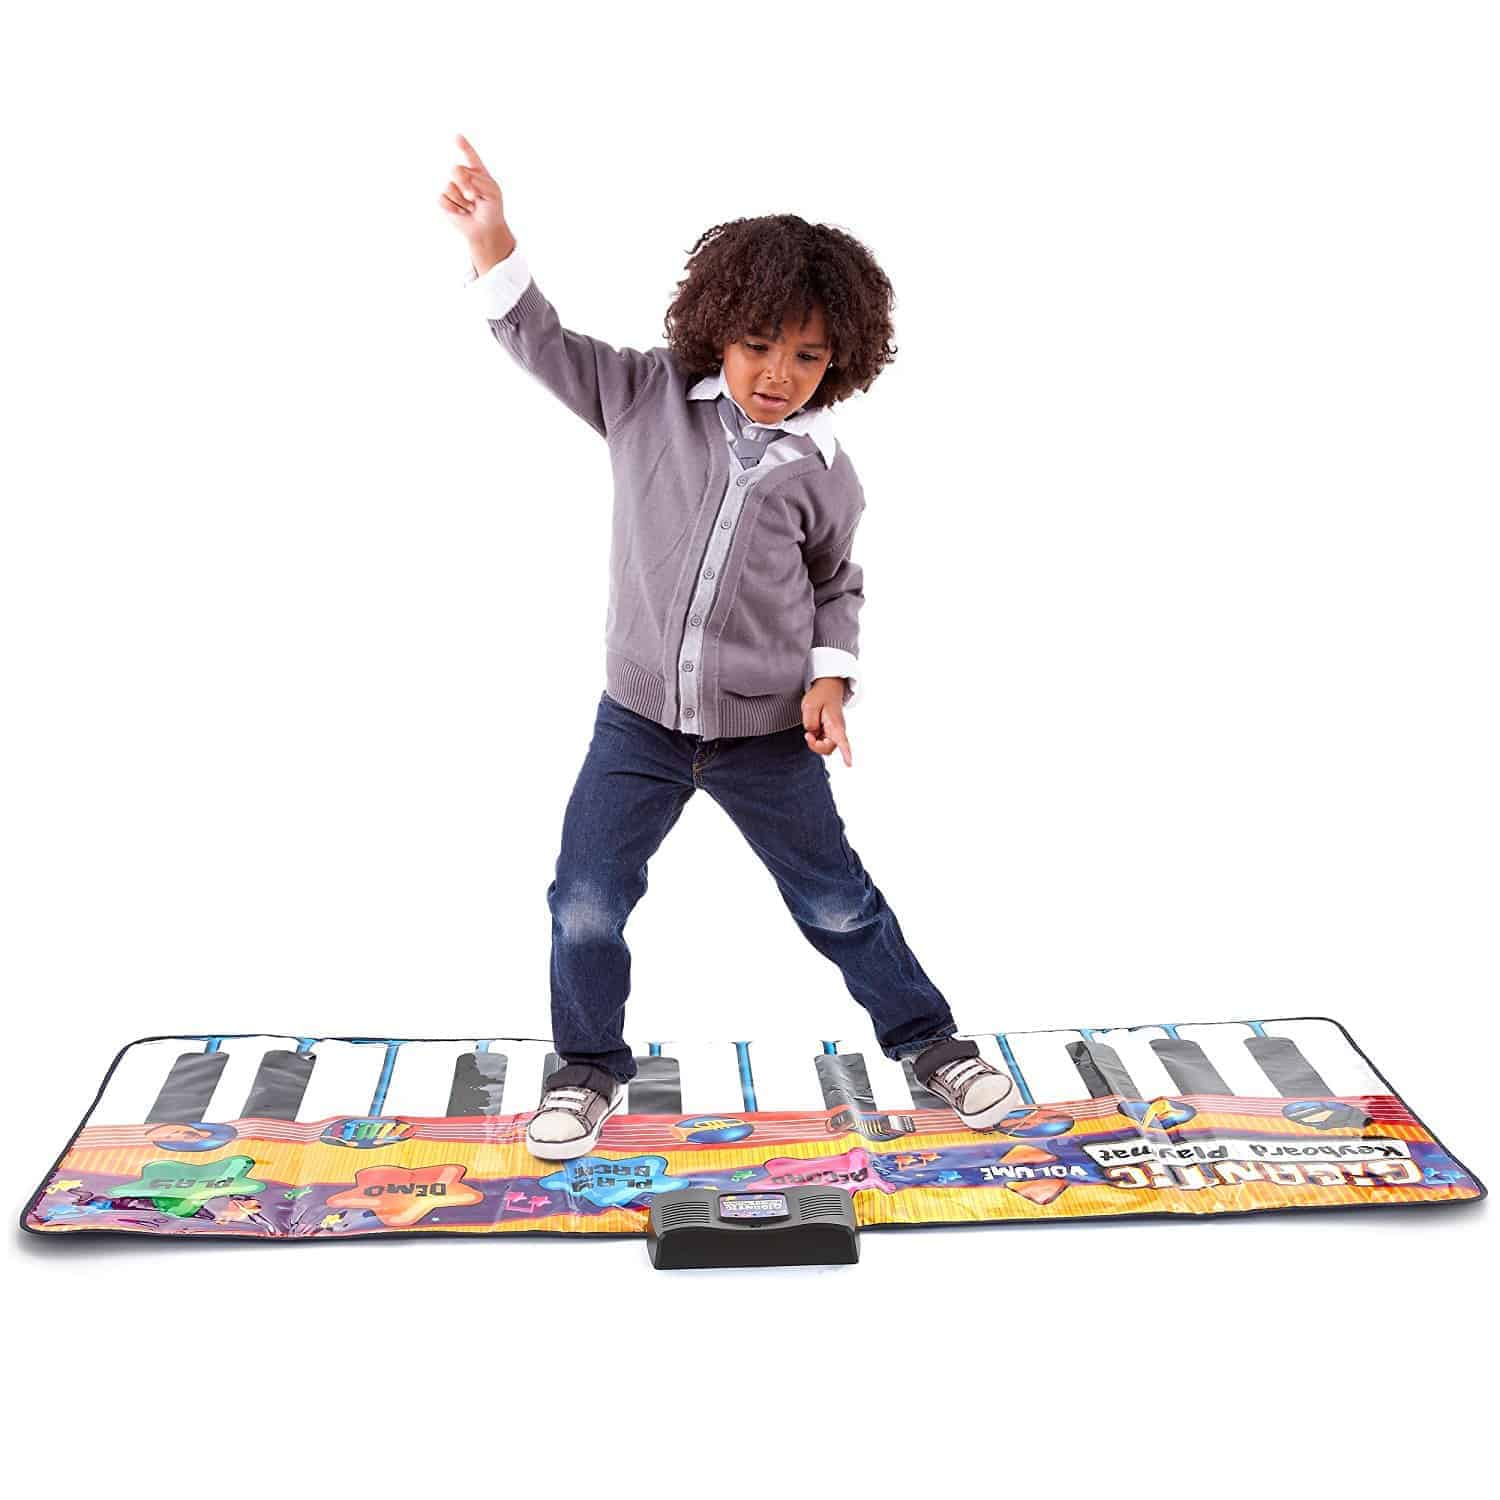 Annoying toys kids love - this Dance Mat.